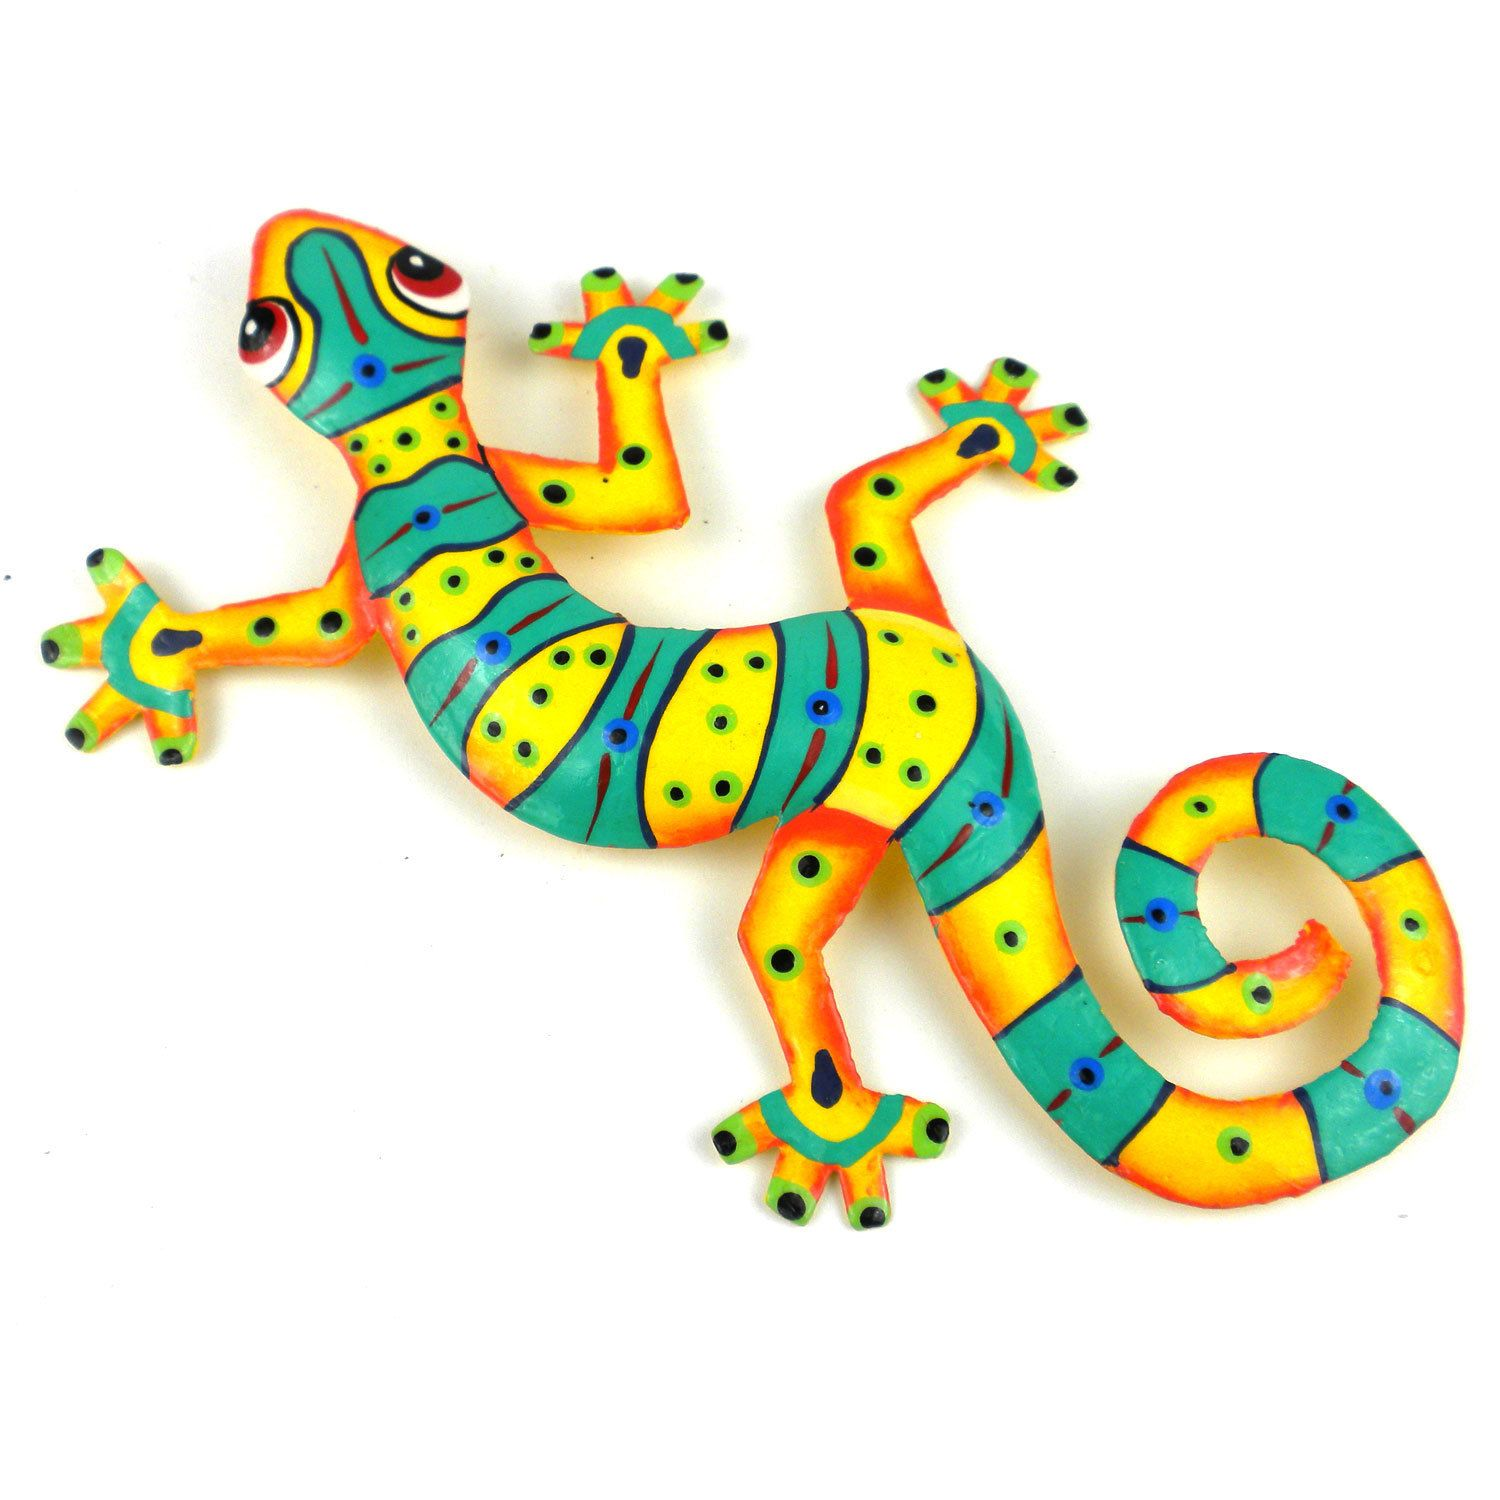 Global crafts hand painted eight inch metal ugreen stripesu gecko